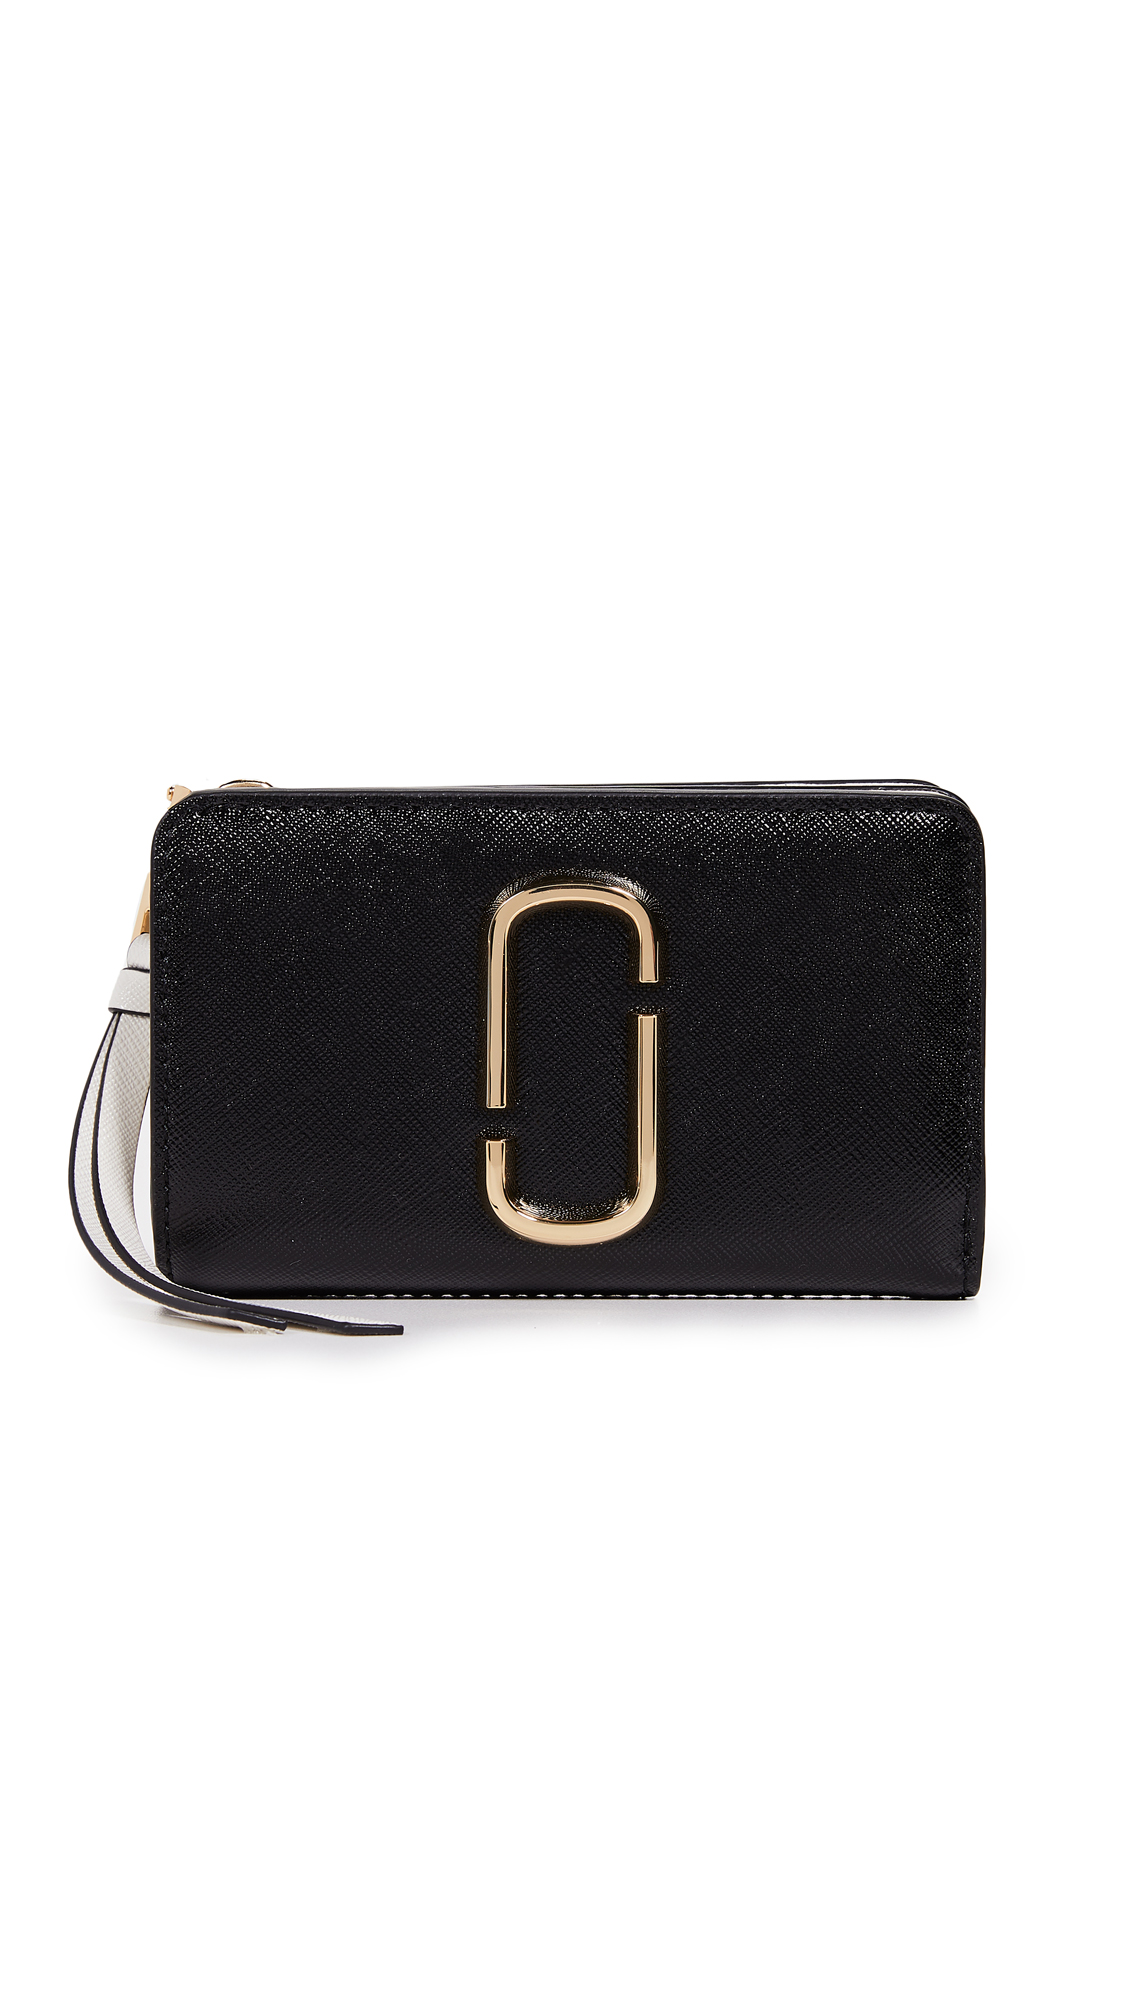 Marc Jacobs Snapshot Compact Wallet In Black Multi